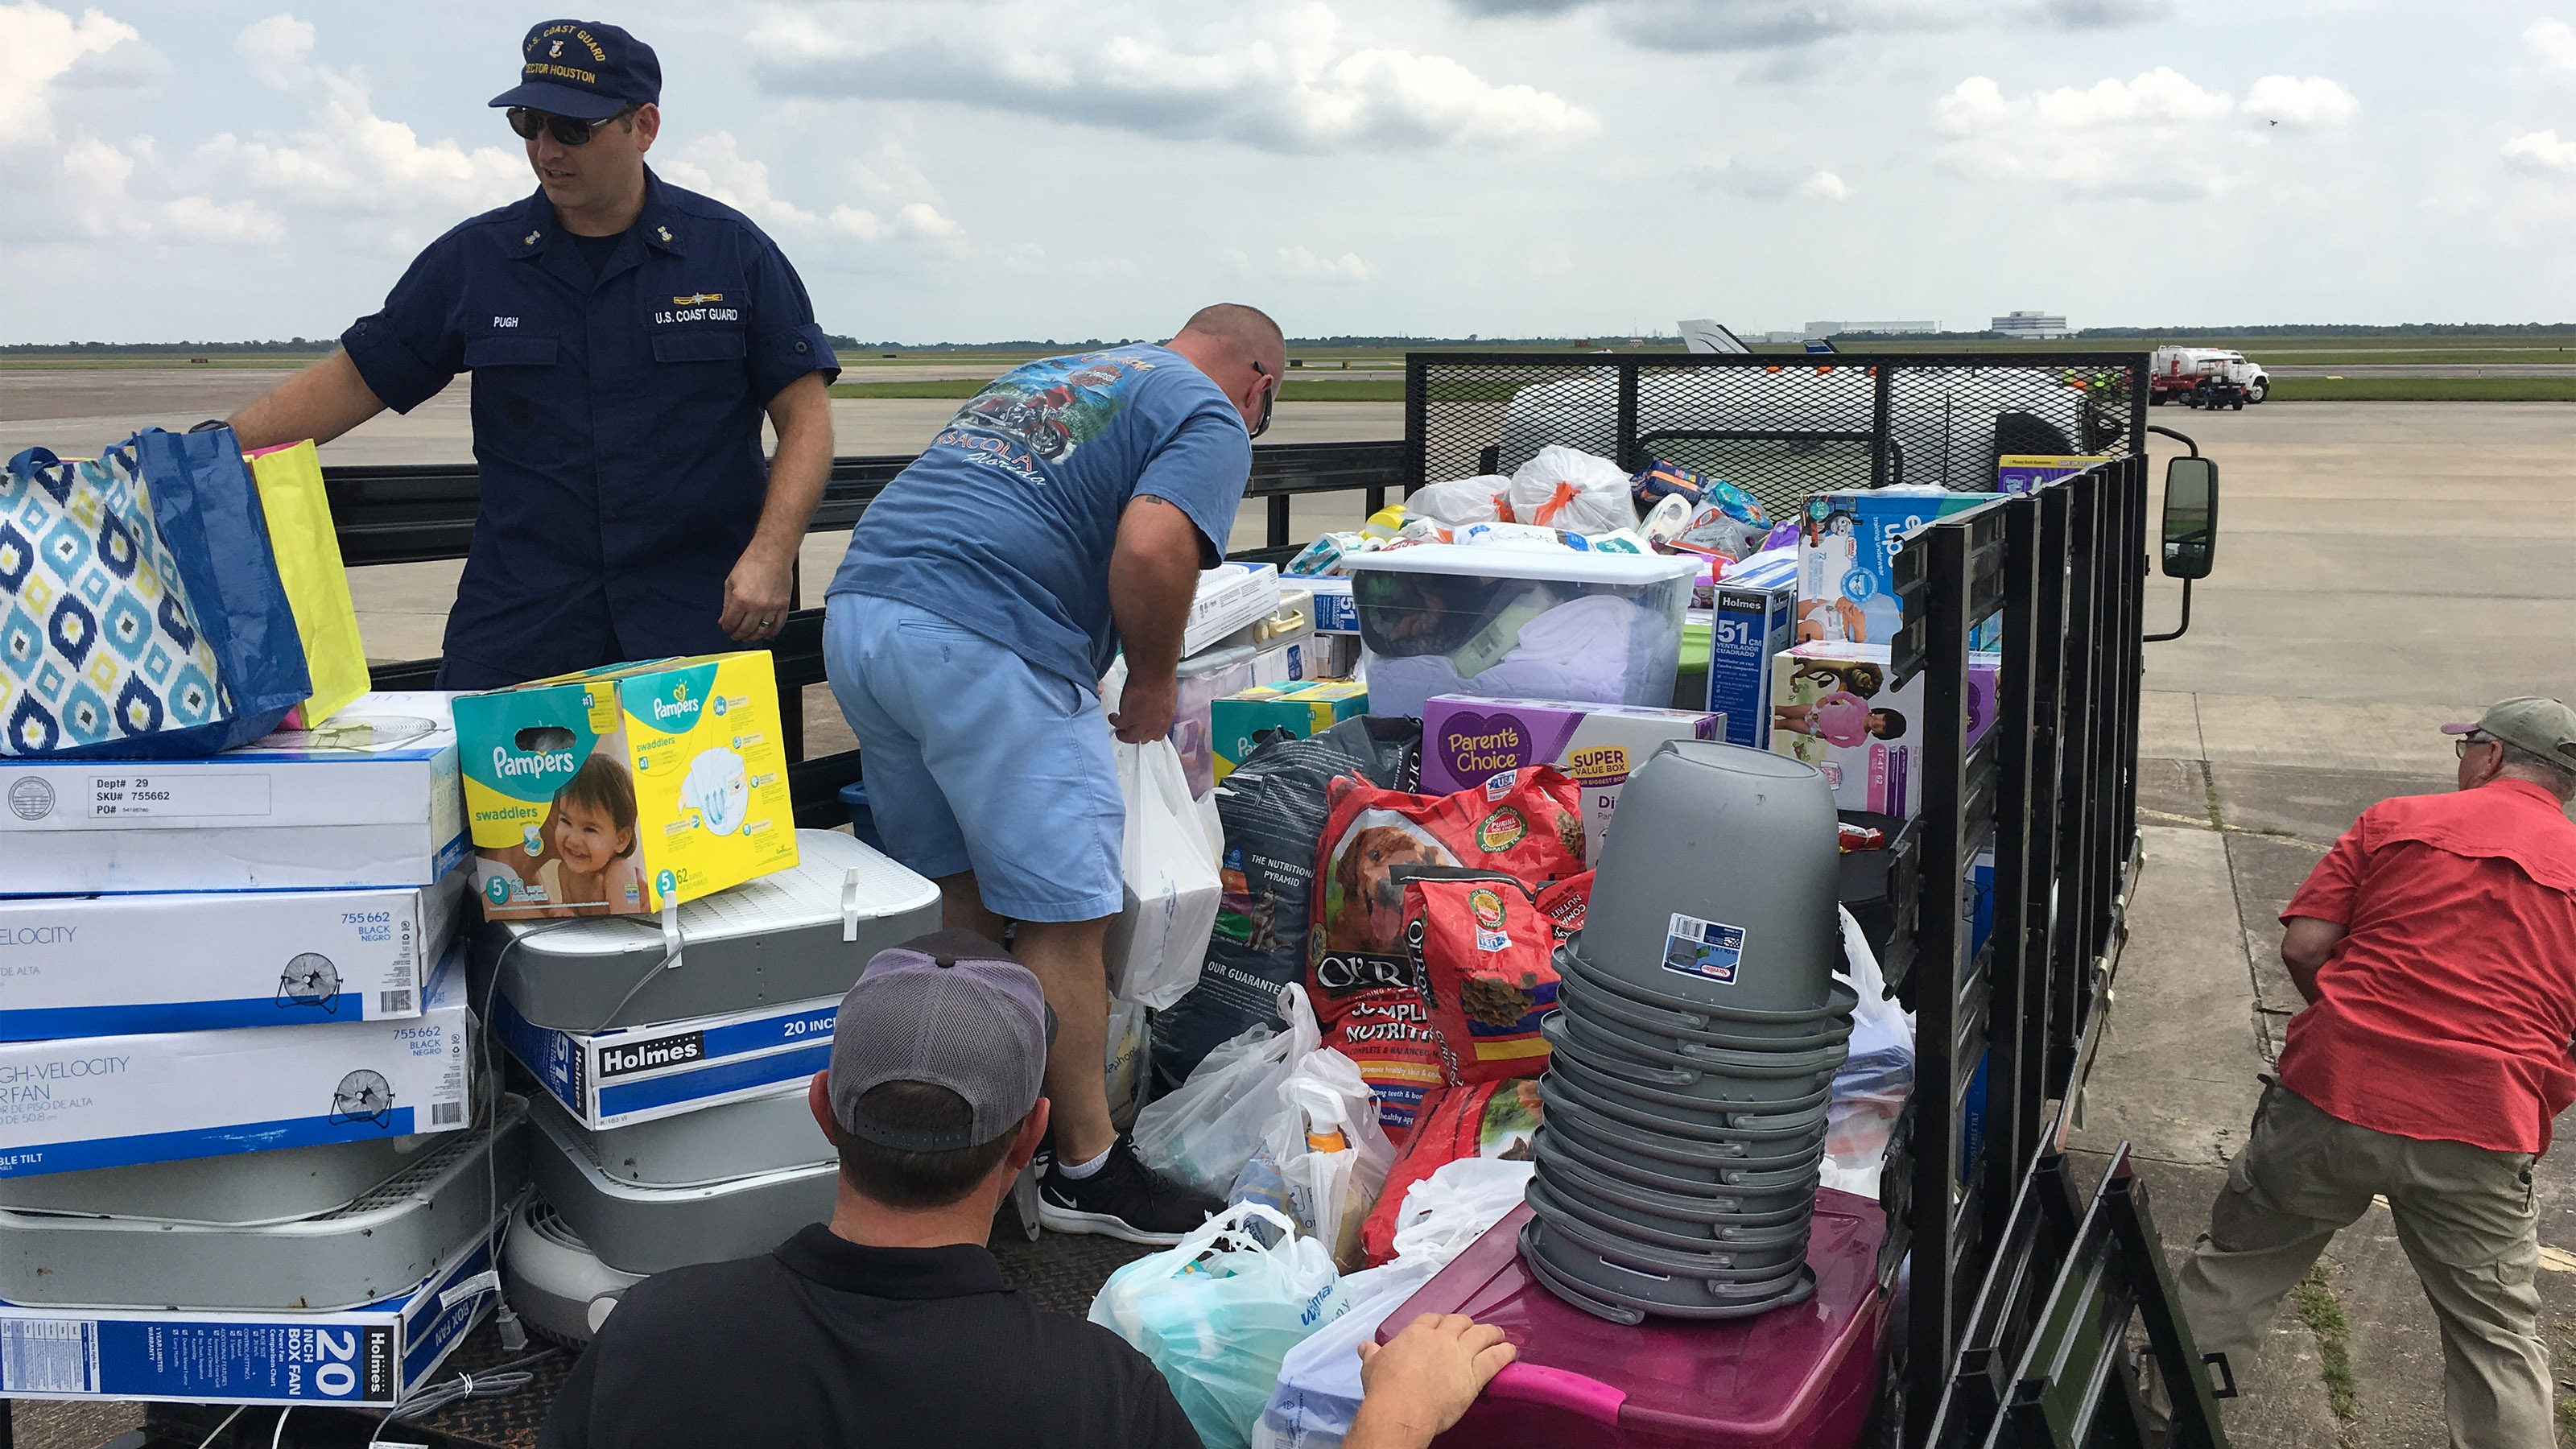 Distributing supplies at Ellington Airport (KEFD) to directly support U.S. Coast Guard families displaced by Hurricane Harvey.  Photo courtesy of Robert Johnson.